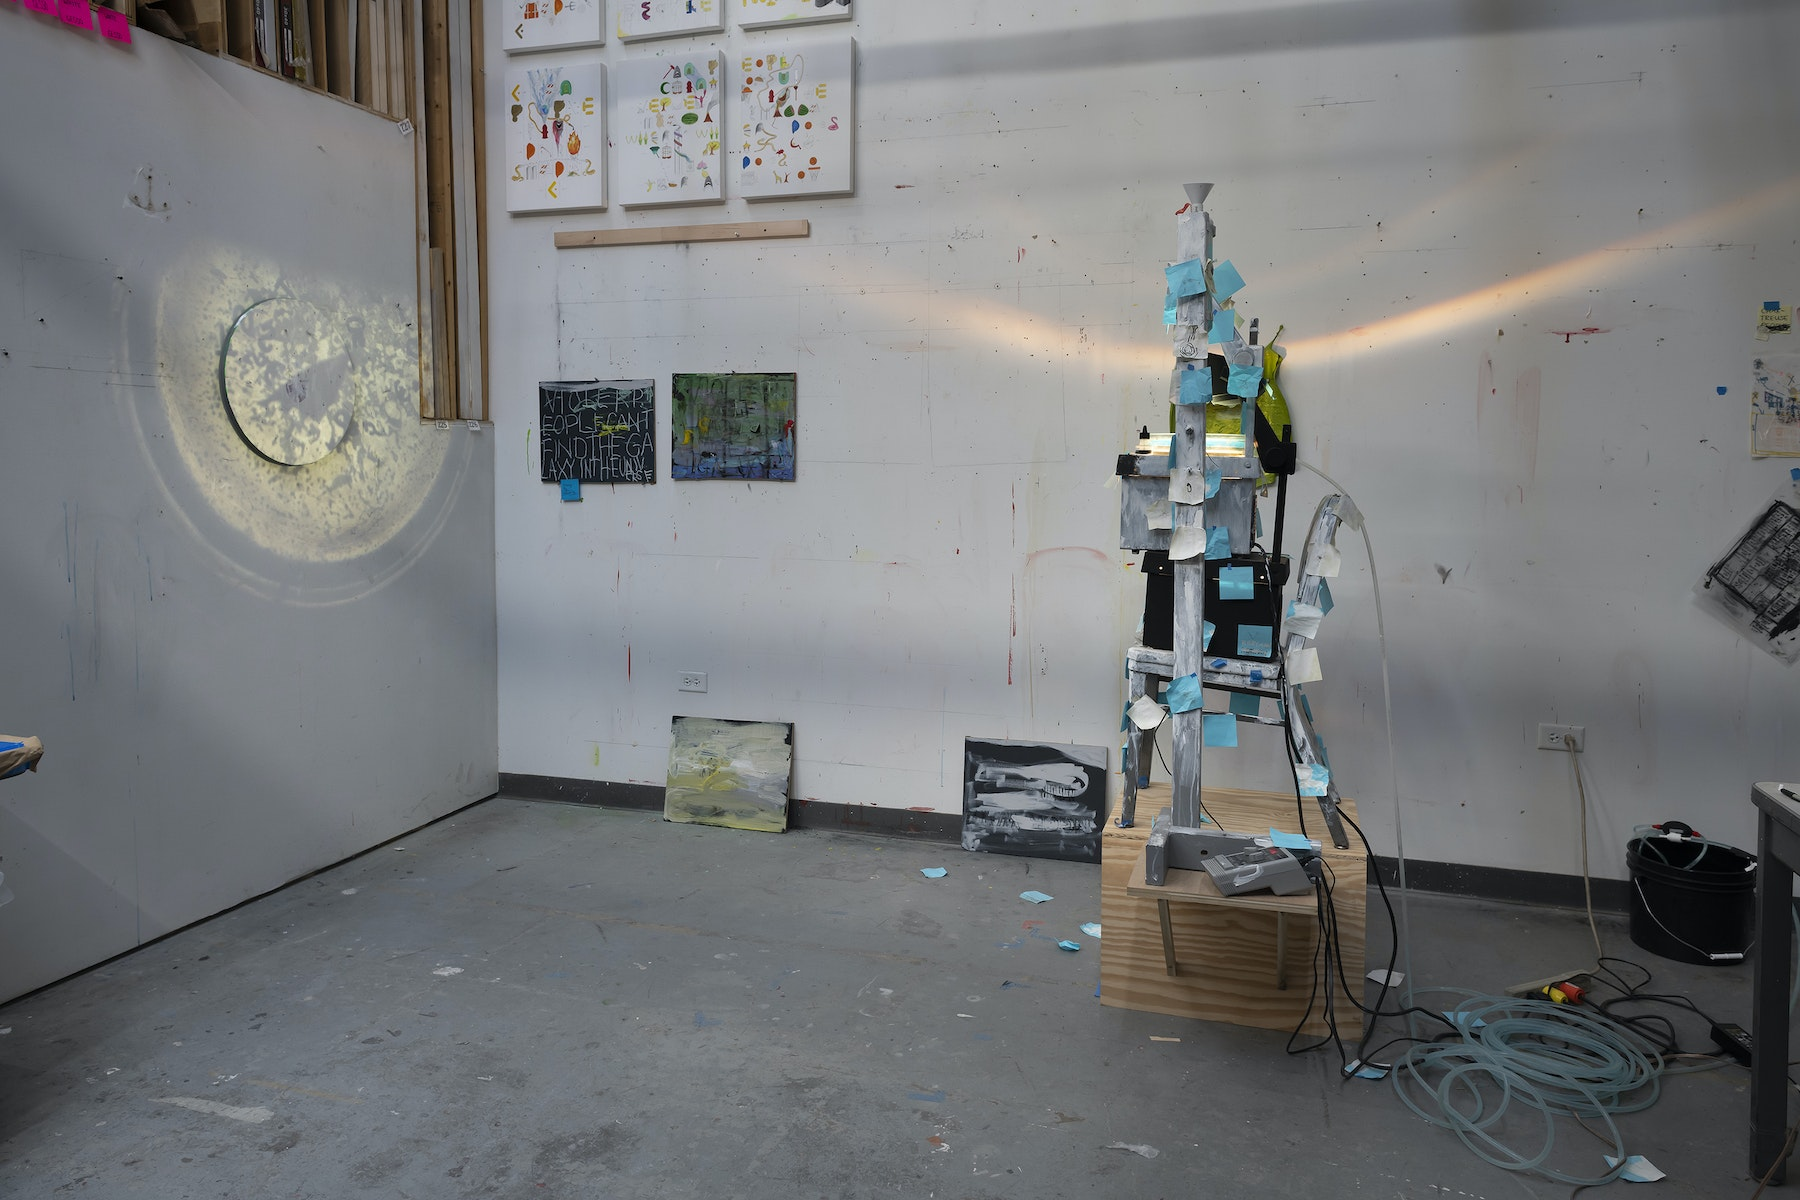 "Pope.L ""I Machine,"" 2014 - 2020 (2) overhead projectors, acrylic and graphite on canvas, speakers, microphone, chair, post-its, solenoid, tubing, gralab 451 photo timer, (2) glass trays, funnel with container, wooden box, wooden armature, painter's tape, threaded rod, bucket 79.5 x 36 x 30"" [HxWxD] (201.93 x 91.44 x 76.2 cm) Inventory #POP345 Courtesy of the Artist and Vielmetter Los Angeles. © Pope.L Photo credit: James Prinz"